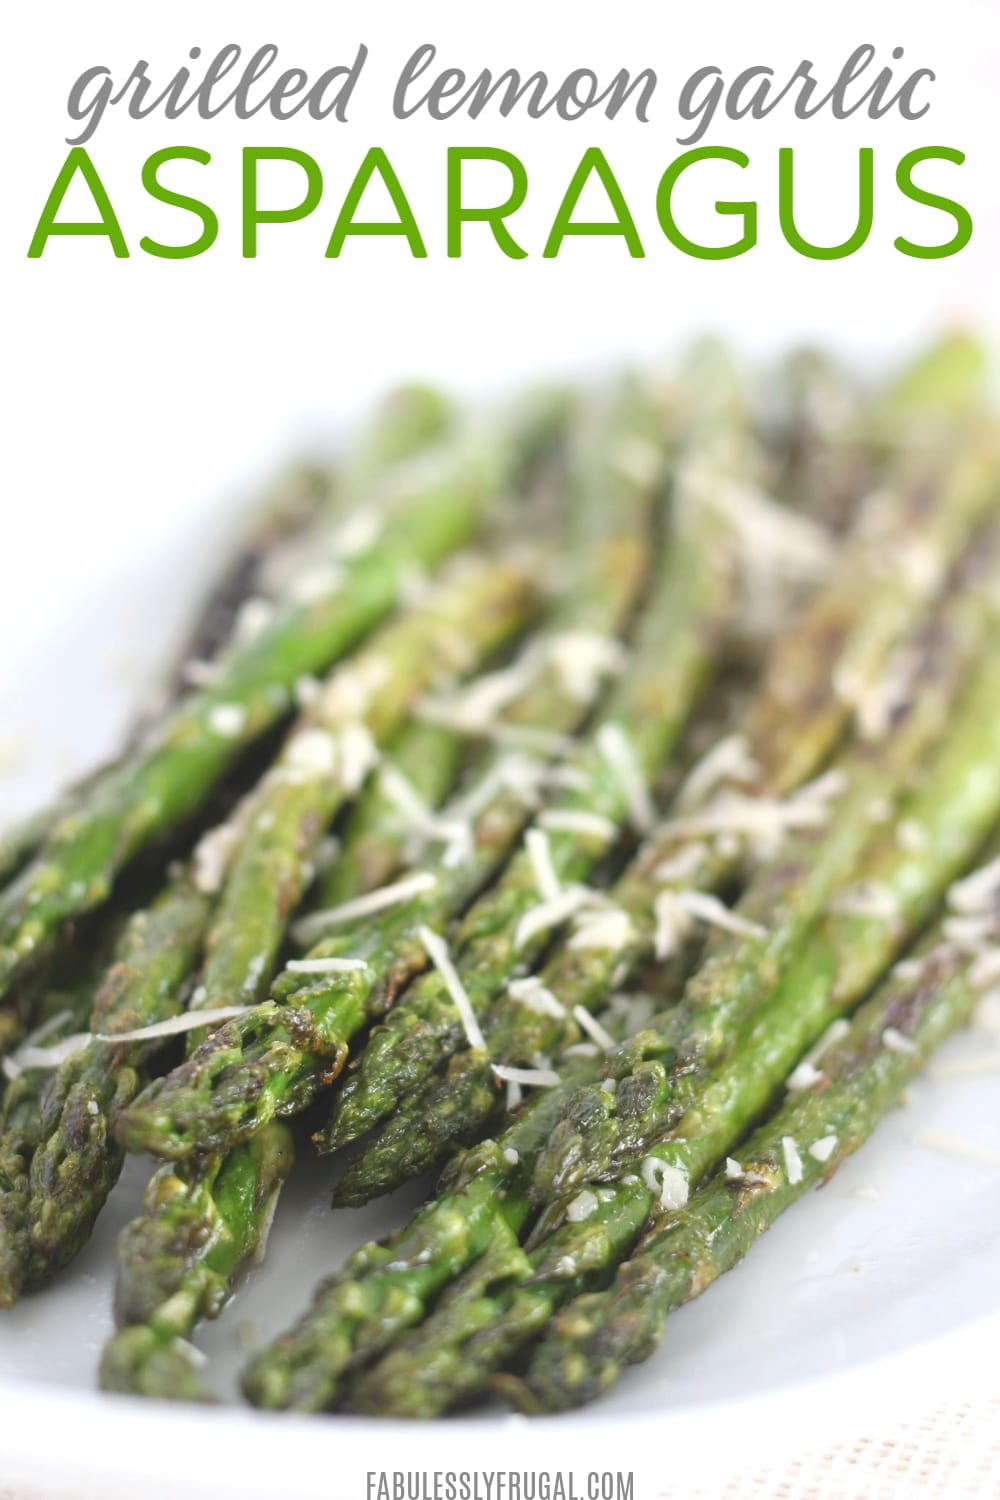 grilled asparagus with lemon and garlic recipe